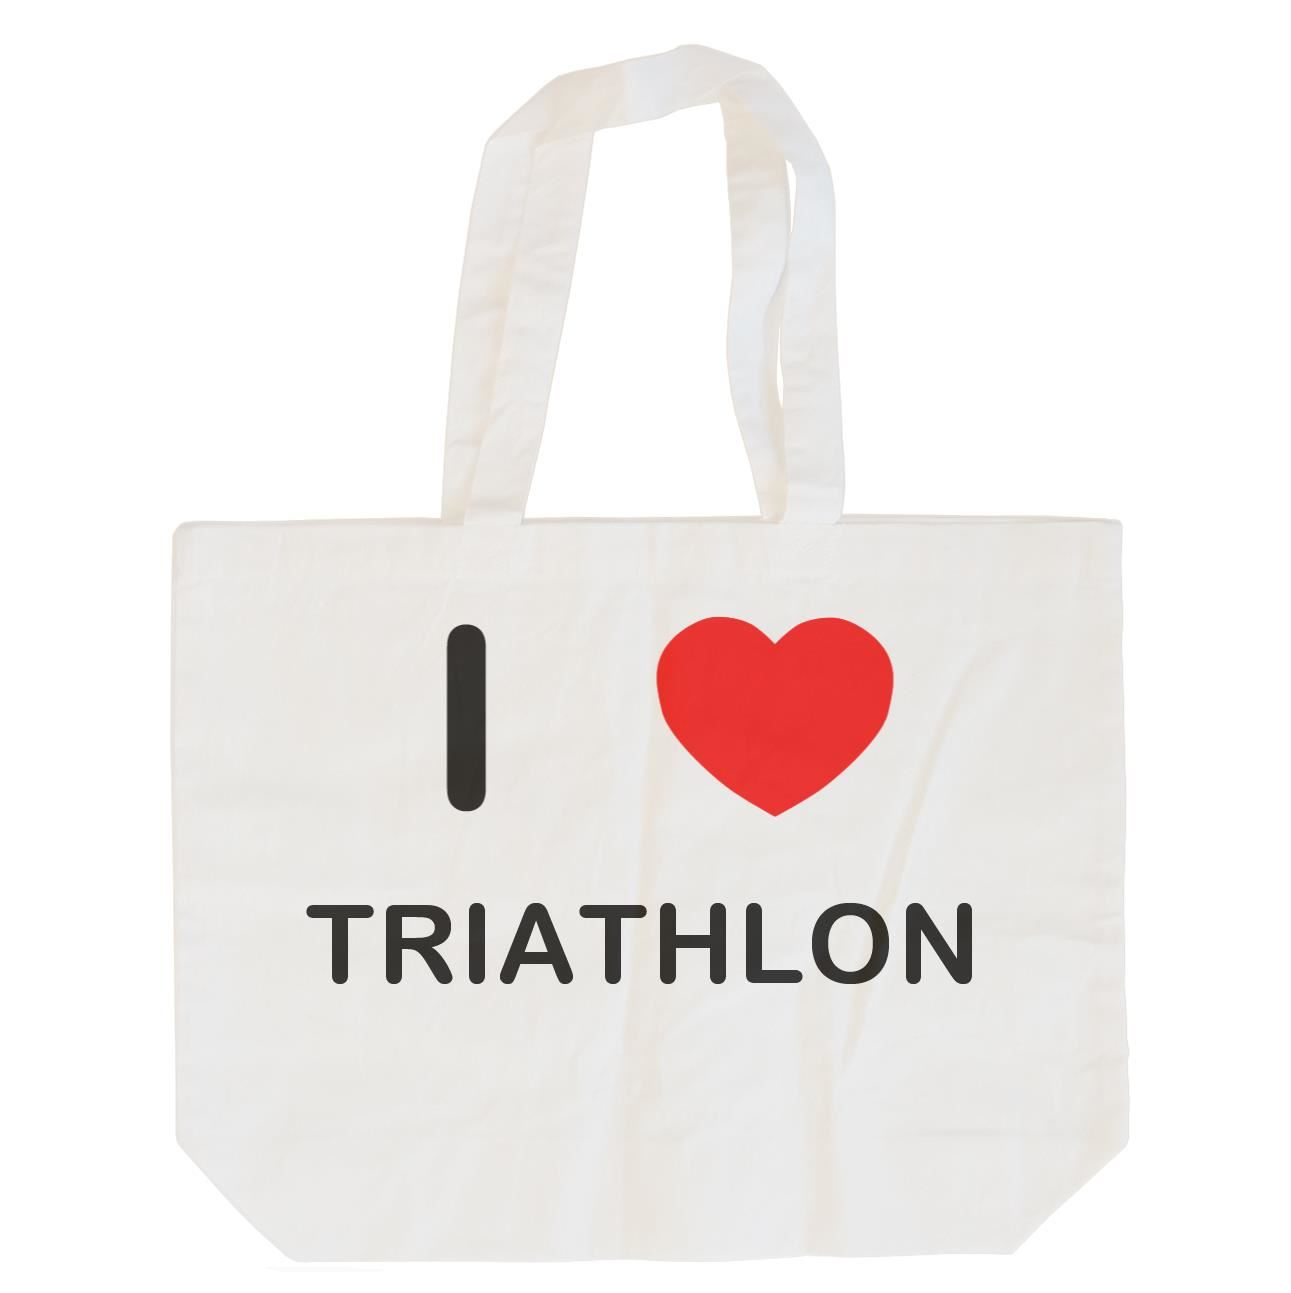 I Love Triathlon - Cotton Bag | Size choice Tote, Shopper or Sling